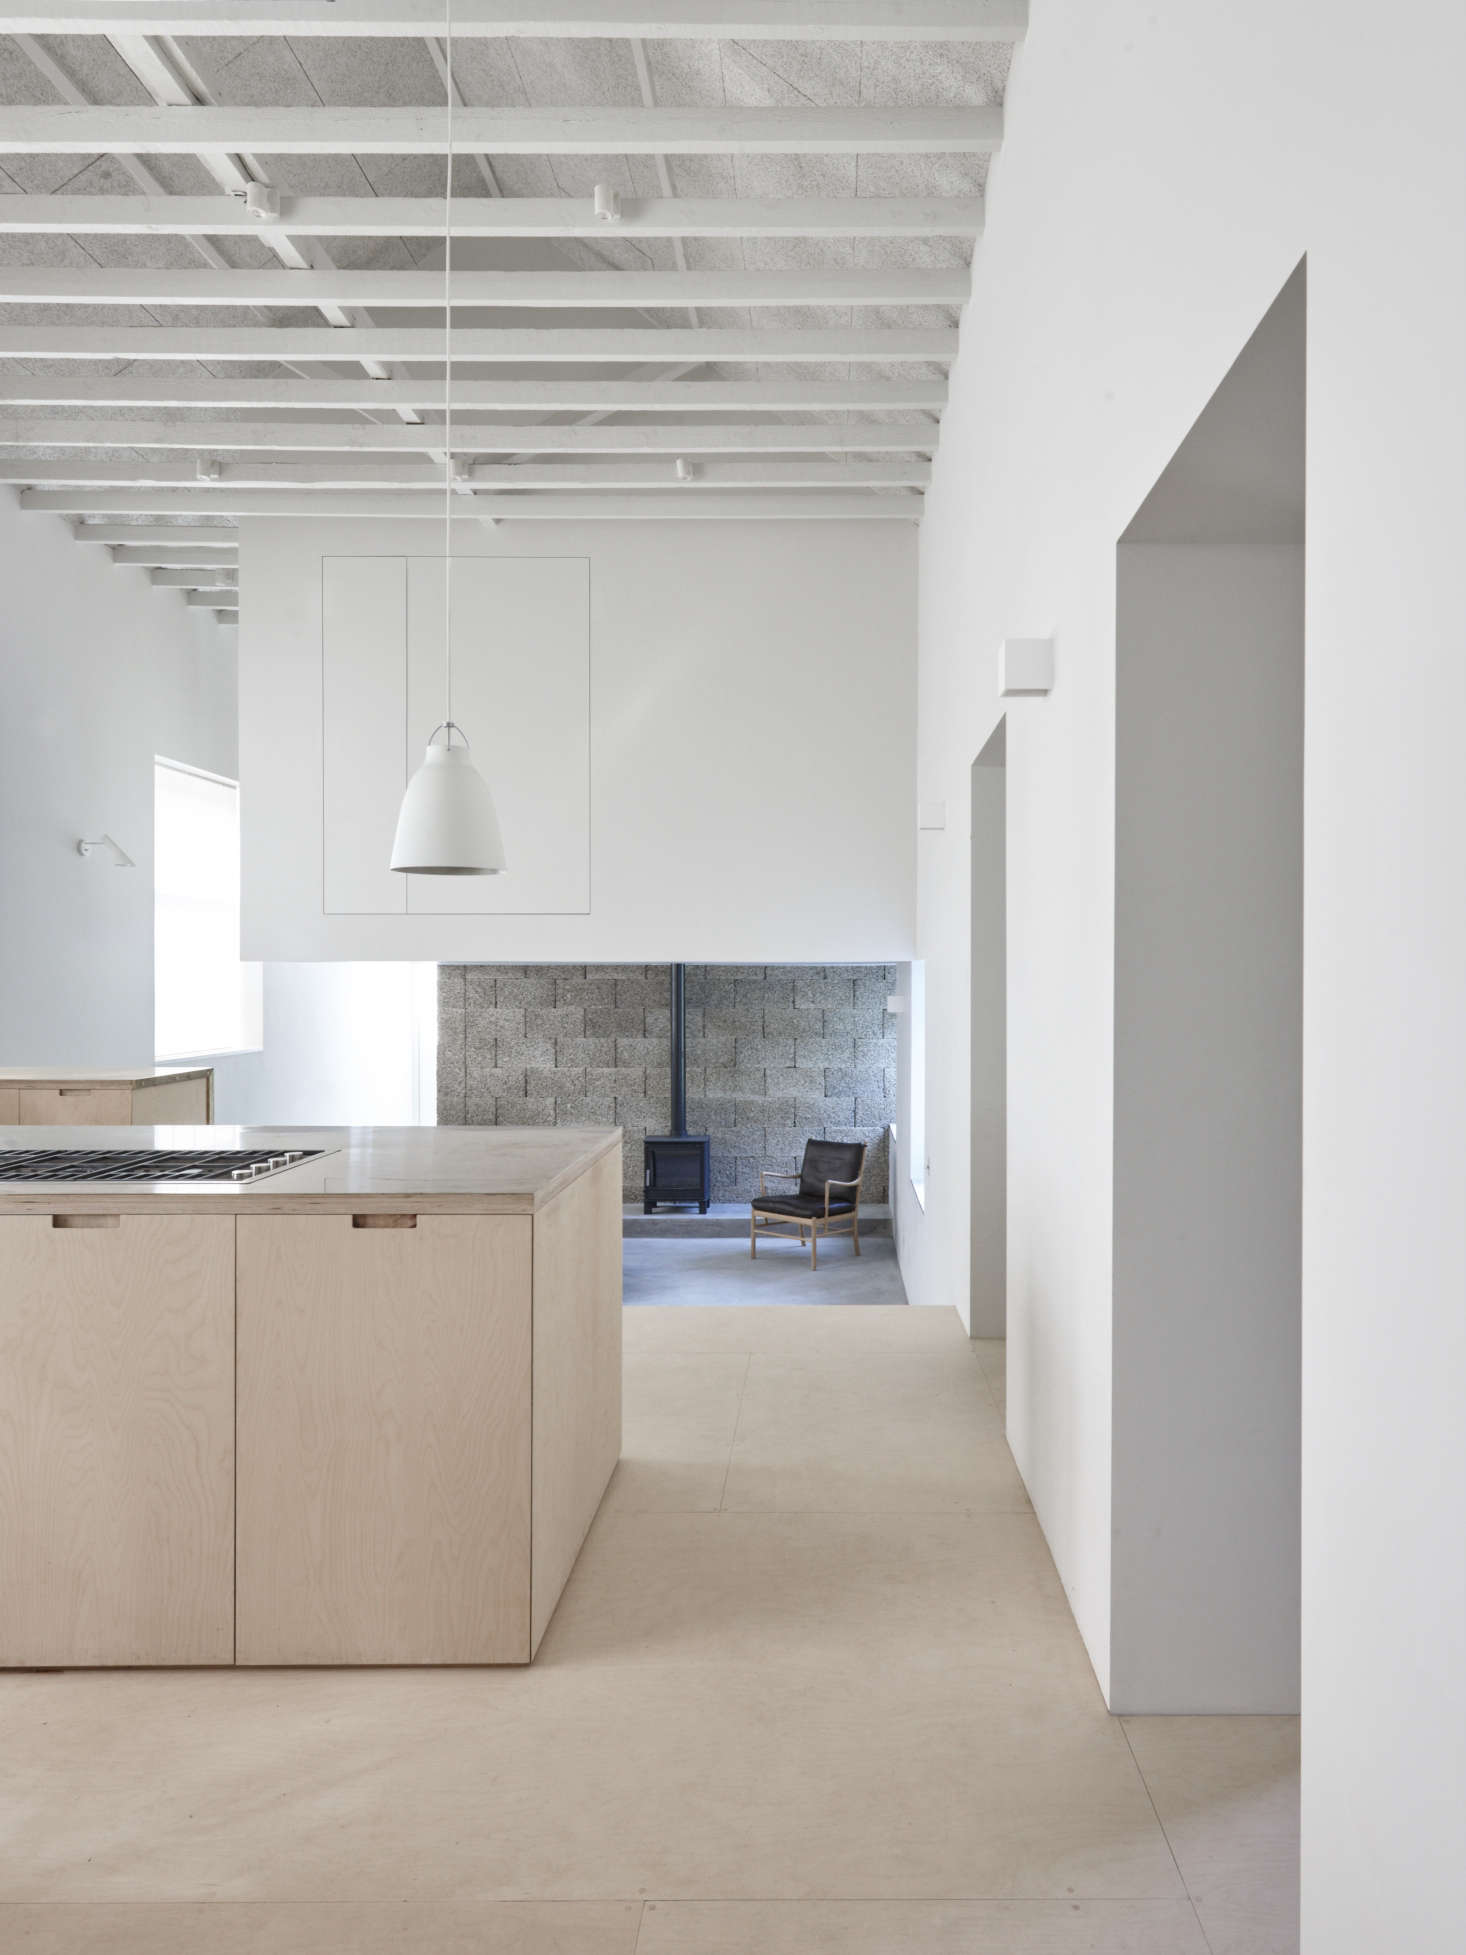 The ground floor featuresa dramatic double-height kitchen. It opens to the living room and clubhouse-like new second-story bedroom area that the architects carved out of gained and unused space—read on for trade secrets.